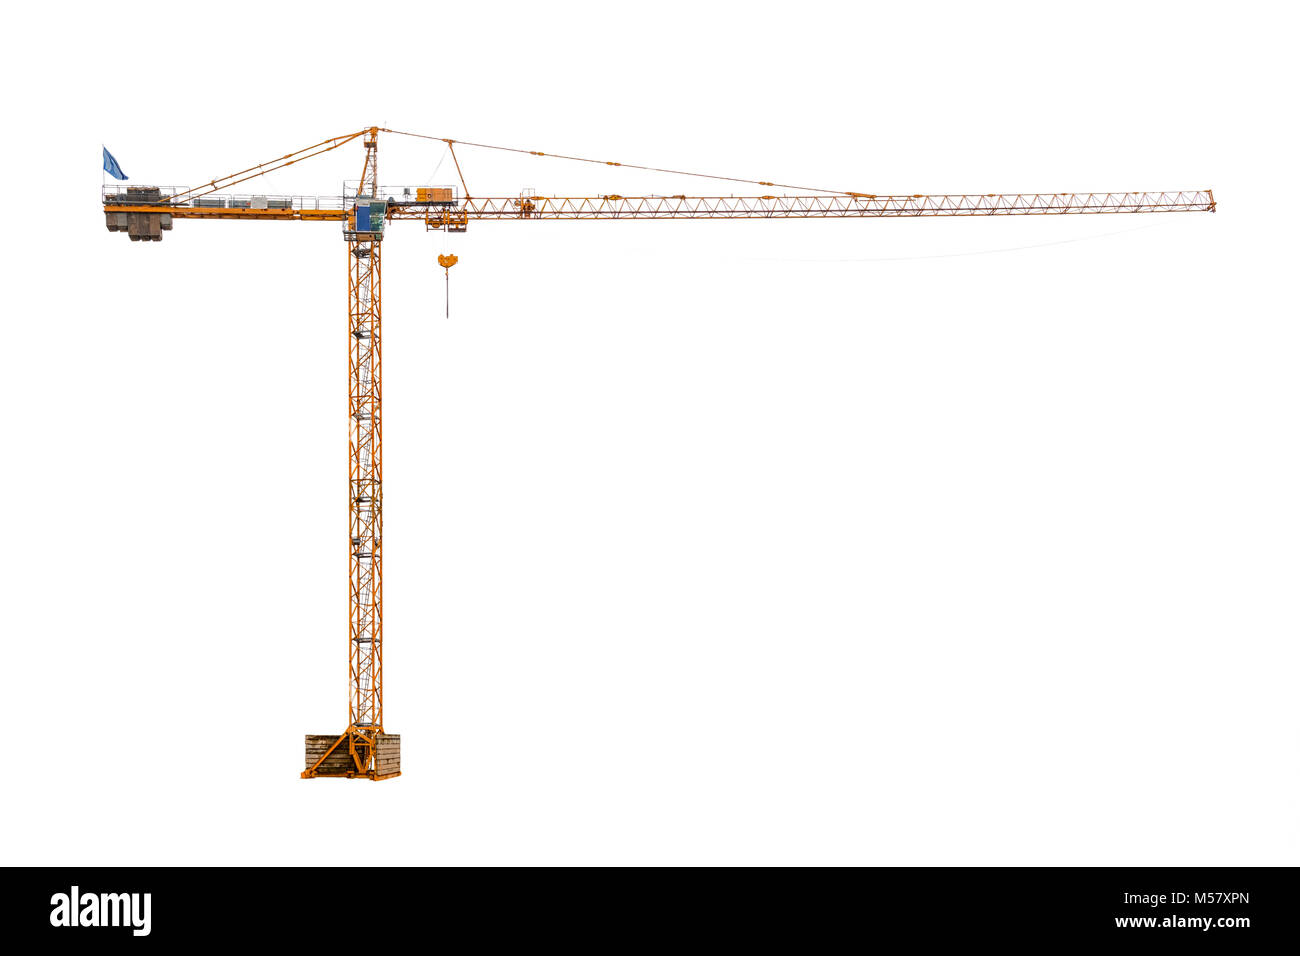 real high construction crane ready to work isolated on white background - Stock Image